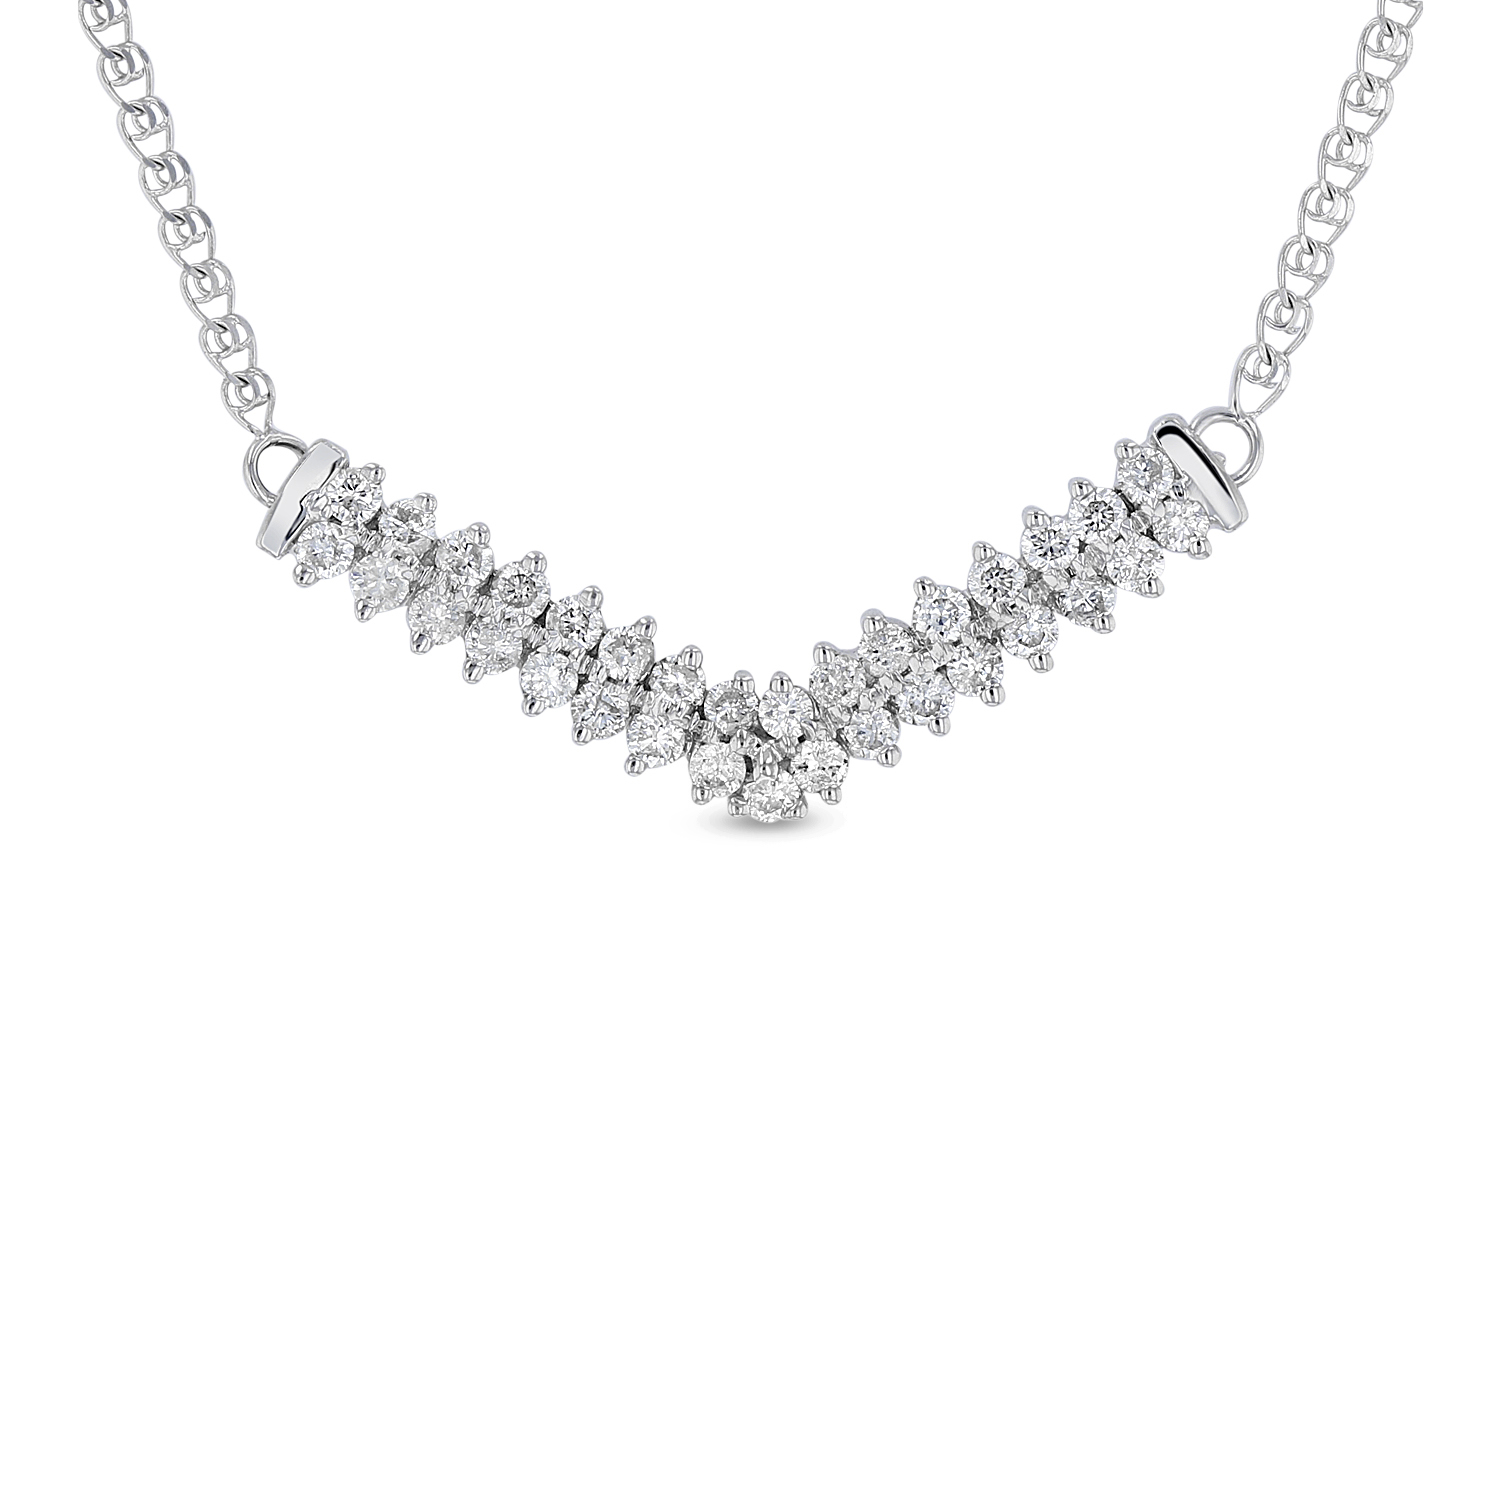 View 0.654 ctw Diamond Necklace in 14K Gold